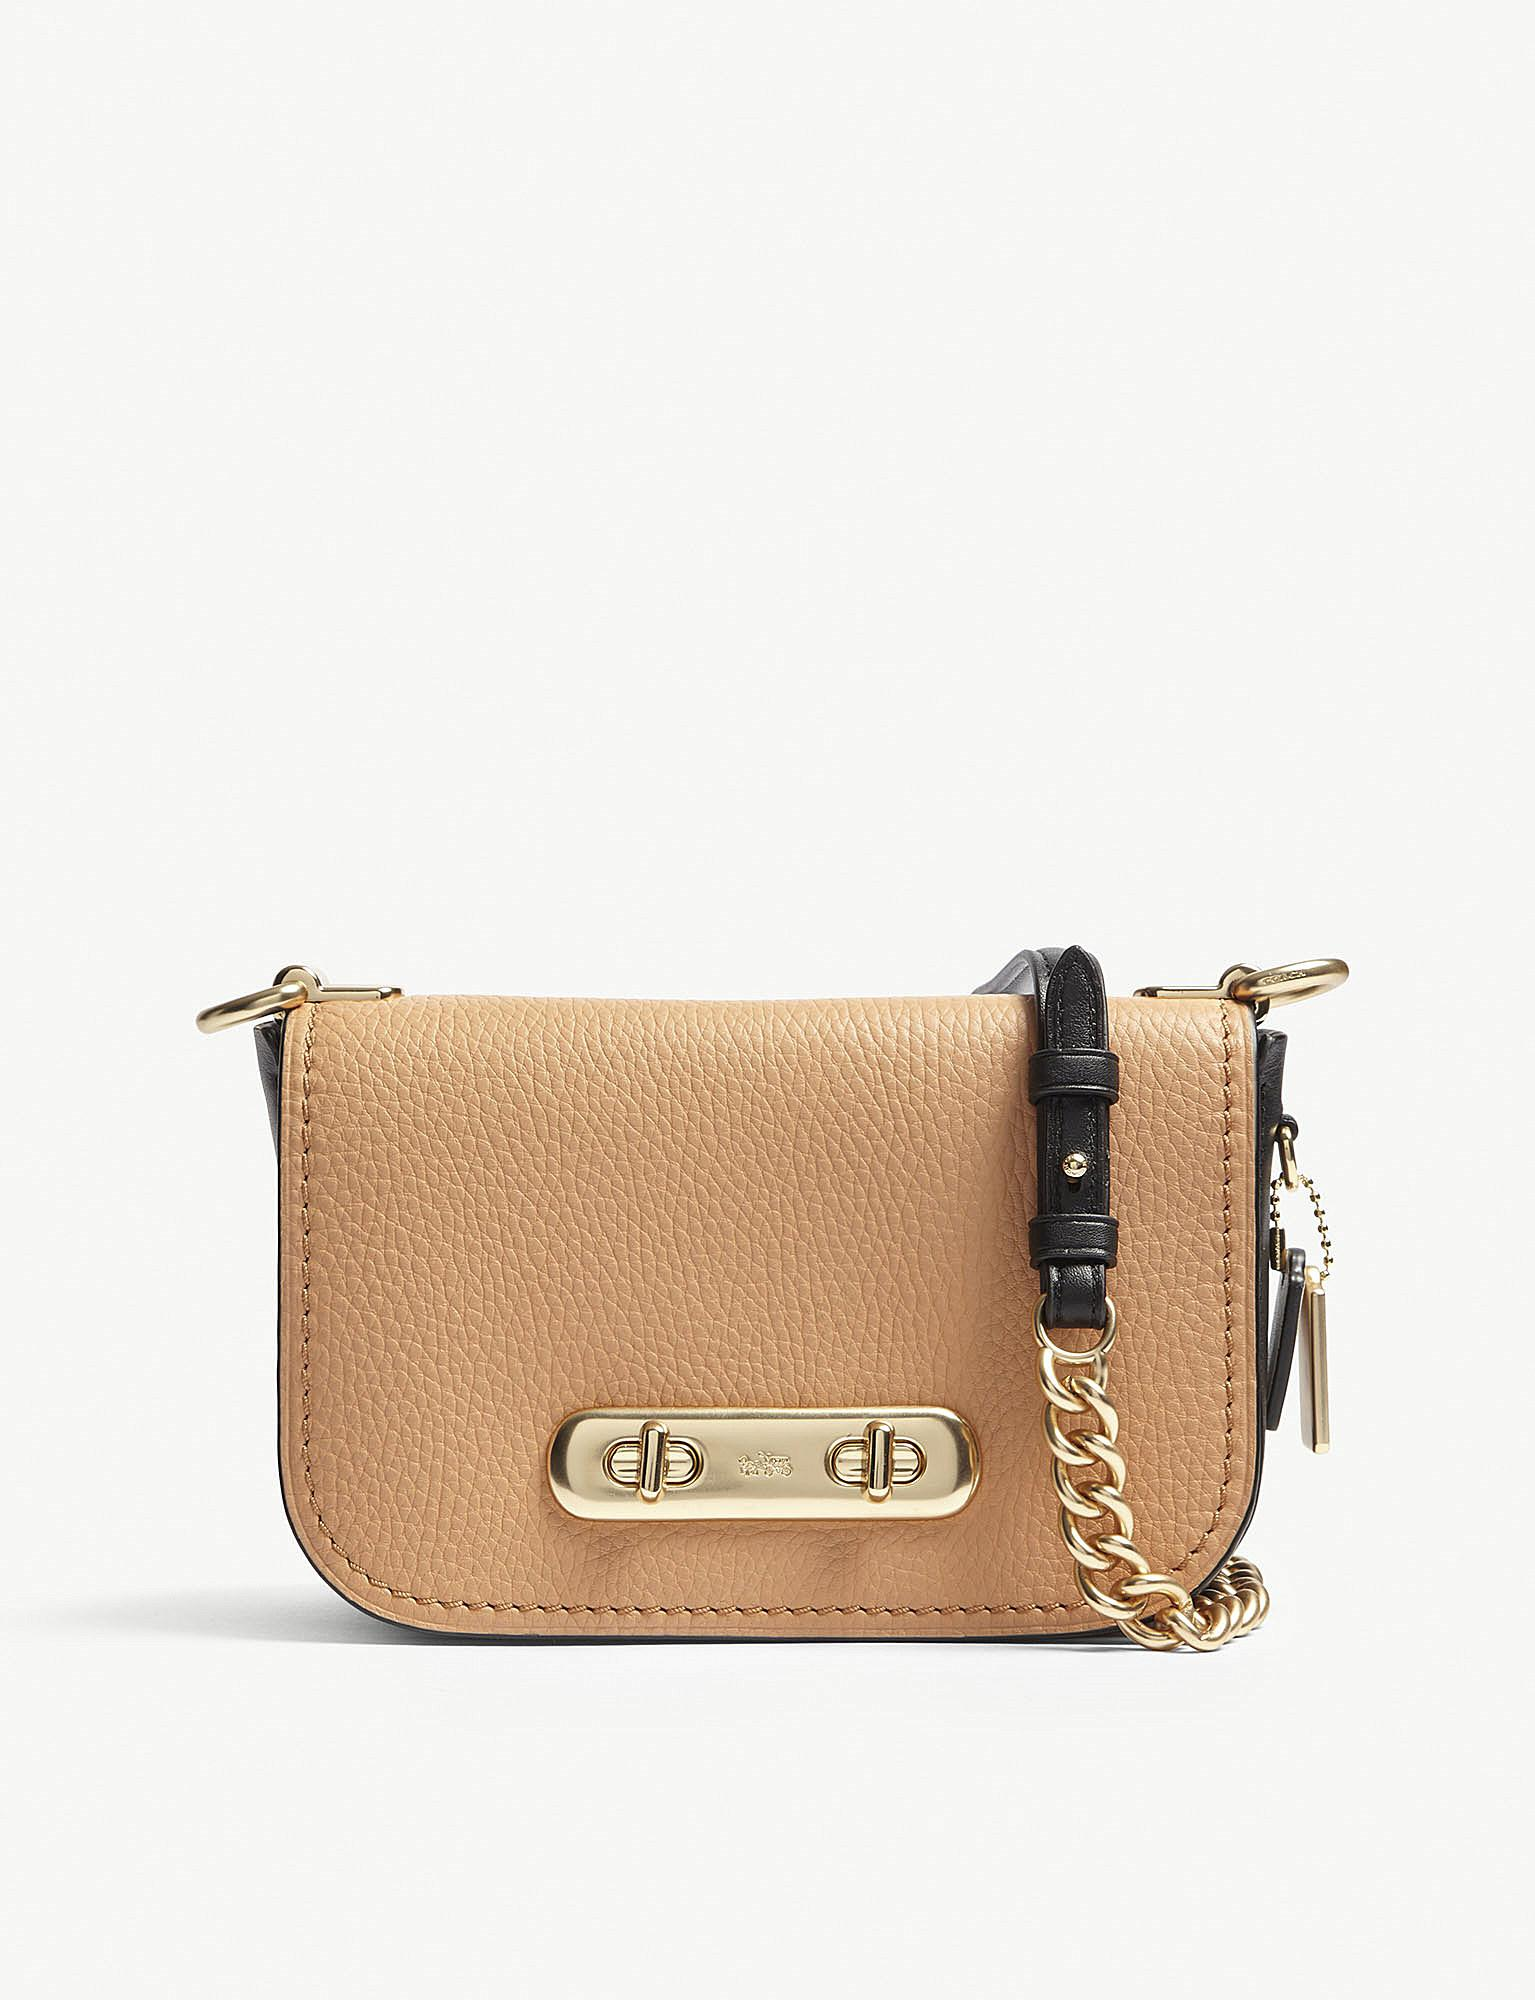 f857ddd7 COACH Swagger 20 Pebbled Leather Cross-body Bag in Brown - Lyst